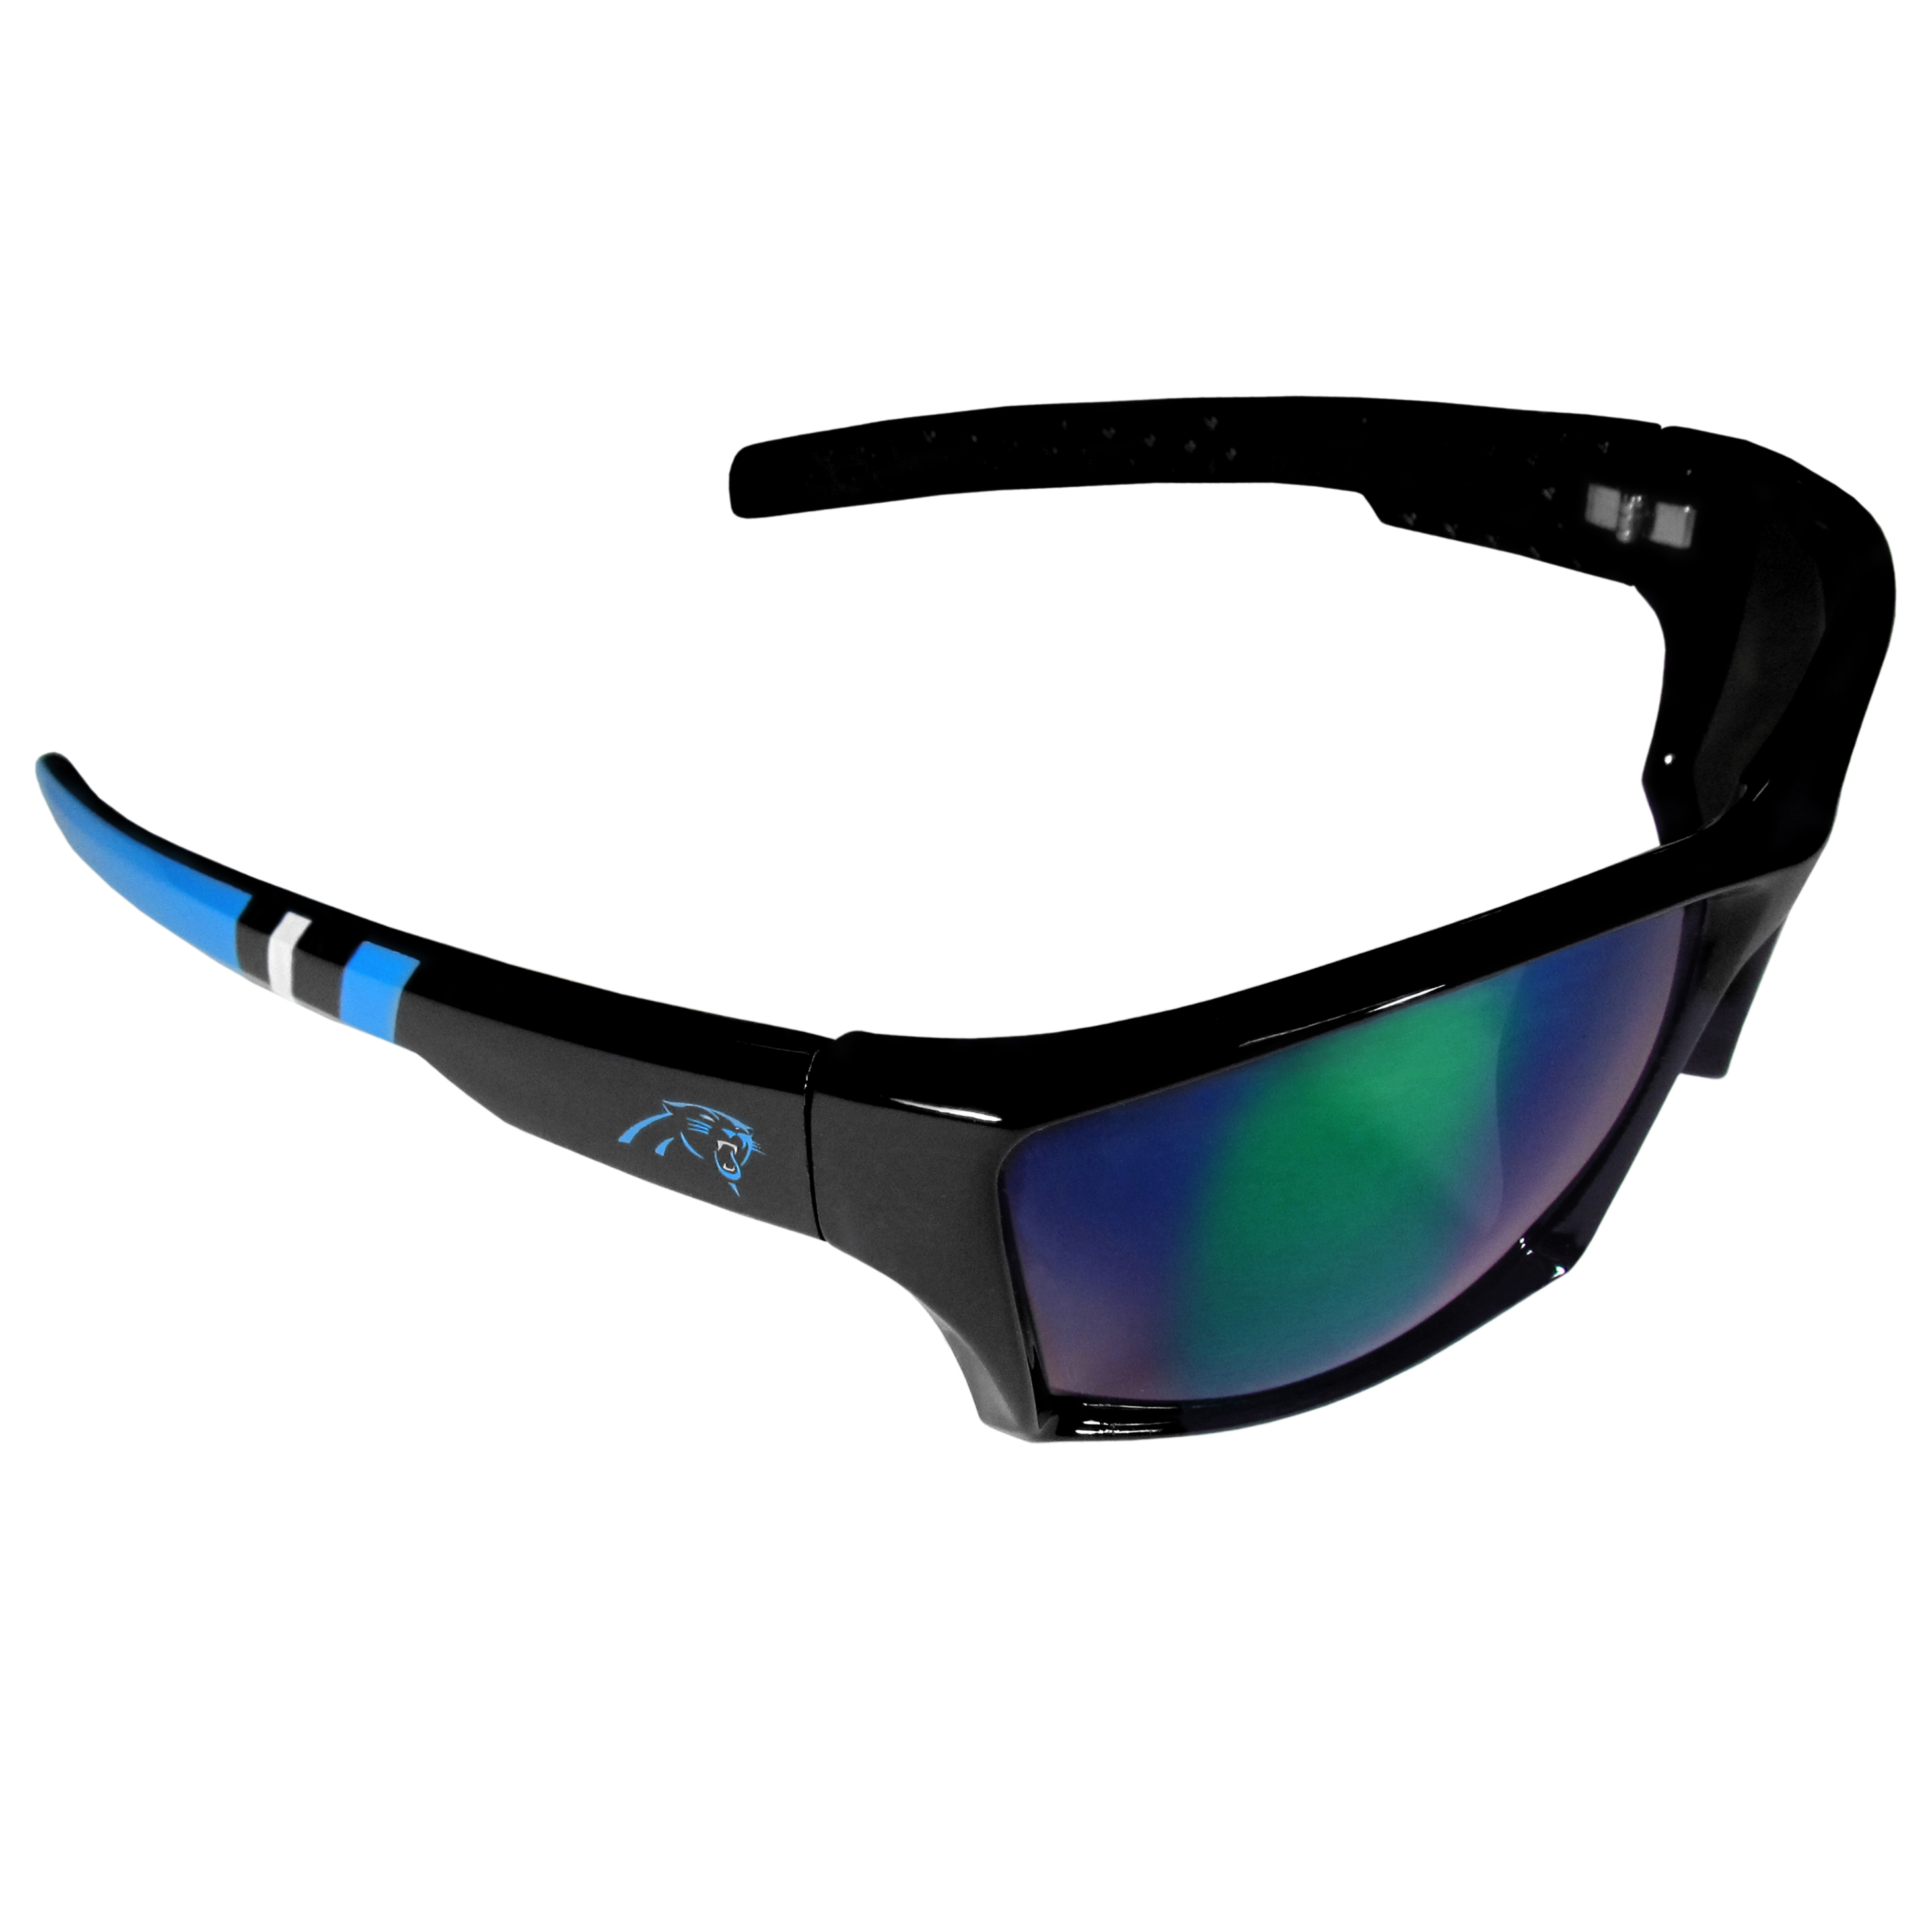 Carolina Panthers Edge Wrap Sunglasses - Be an icon of edgy style while you're in the stadium cheering your Carolina Panthers to victory with our polarized wrap sunglasses that feature 100% UVA/UVB rating for maximum UV protection. The light-weight frames are built to last with flex hinges for comfort and durability which make them perfect for driving or just lounging by the pool. The colorful rubber grips on the arms of these fashionable sunglasses make them perfect for someone with an active lifestyle. Whether you are hiking, fishing, boating, running on the beach, golfing or playing your favorite sport these designer frames will set you apart. Our edge wrap sunglasses are true quality eyewear at an affordable price. The wrap style frames come with team colored stripes and team logos so you can show off your die-hard team pride while protecting your eyes from those bright sun rays.